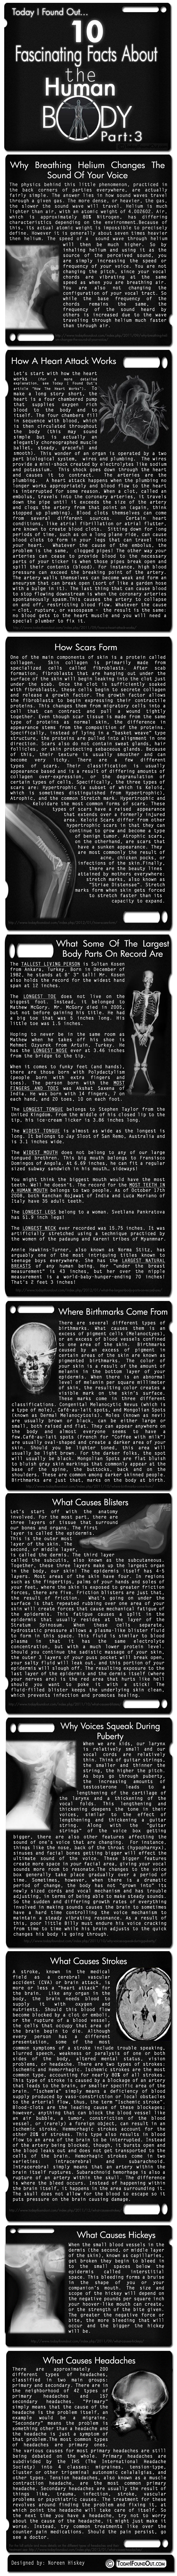 Am not sure  need to know all this, but  never hurts! 10 Facinating Human Body Facts Part 3 - www.awakening-intuition.com